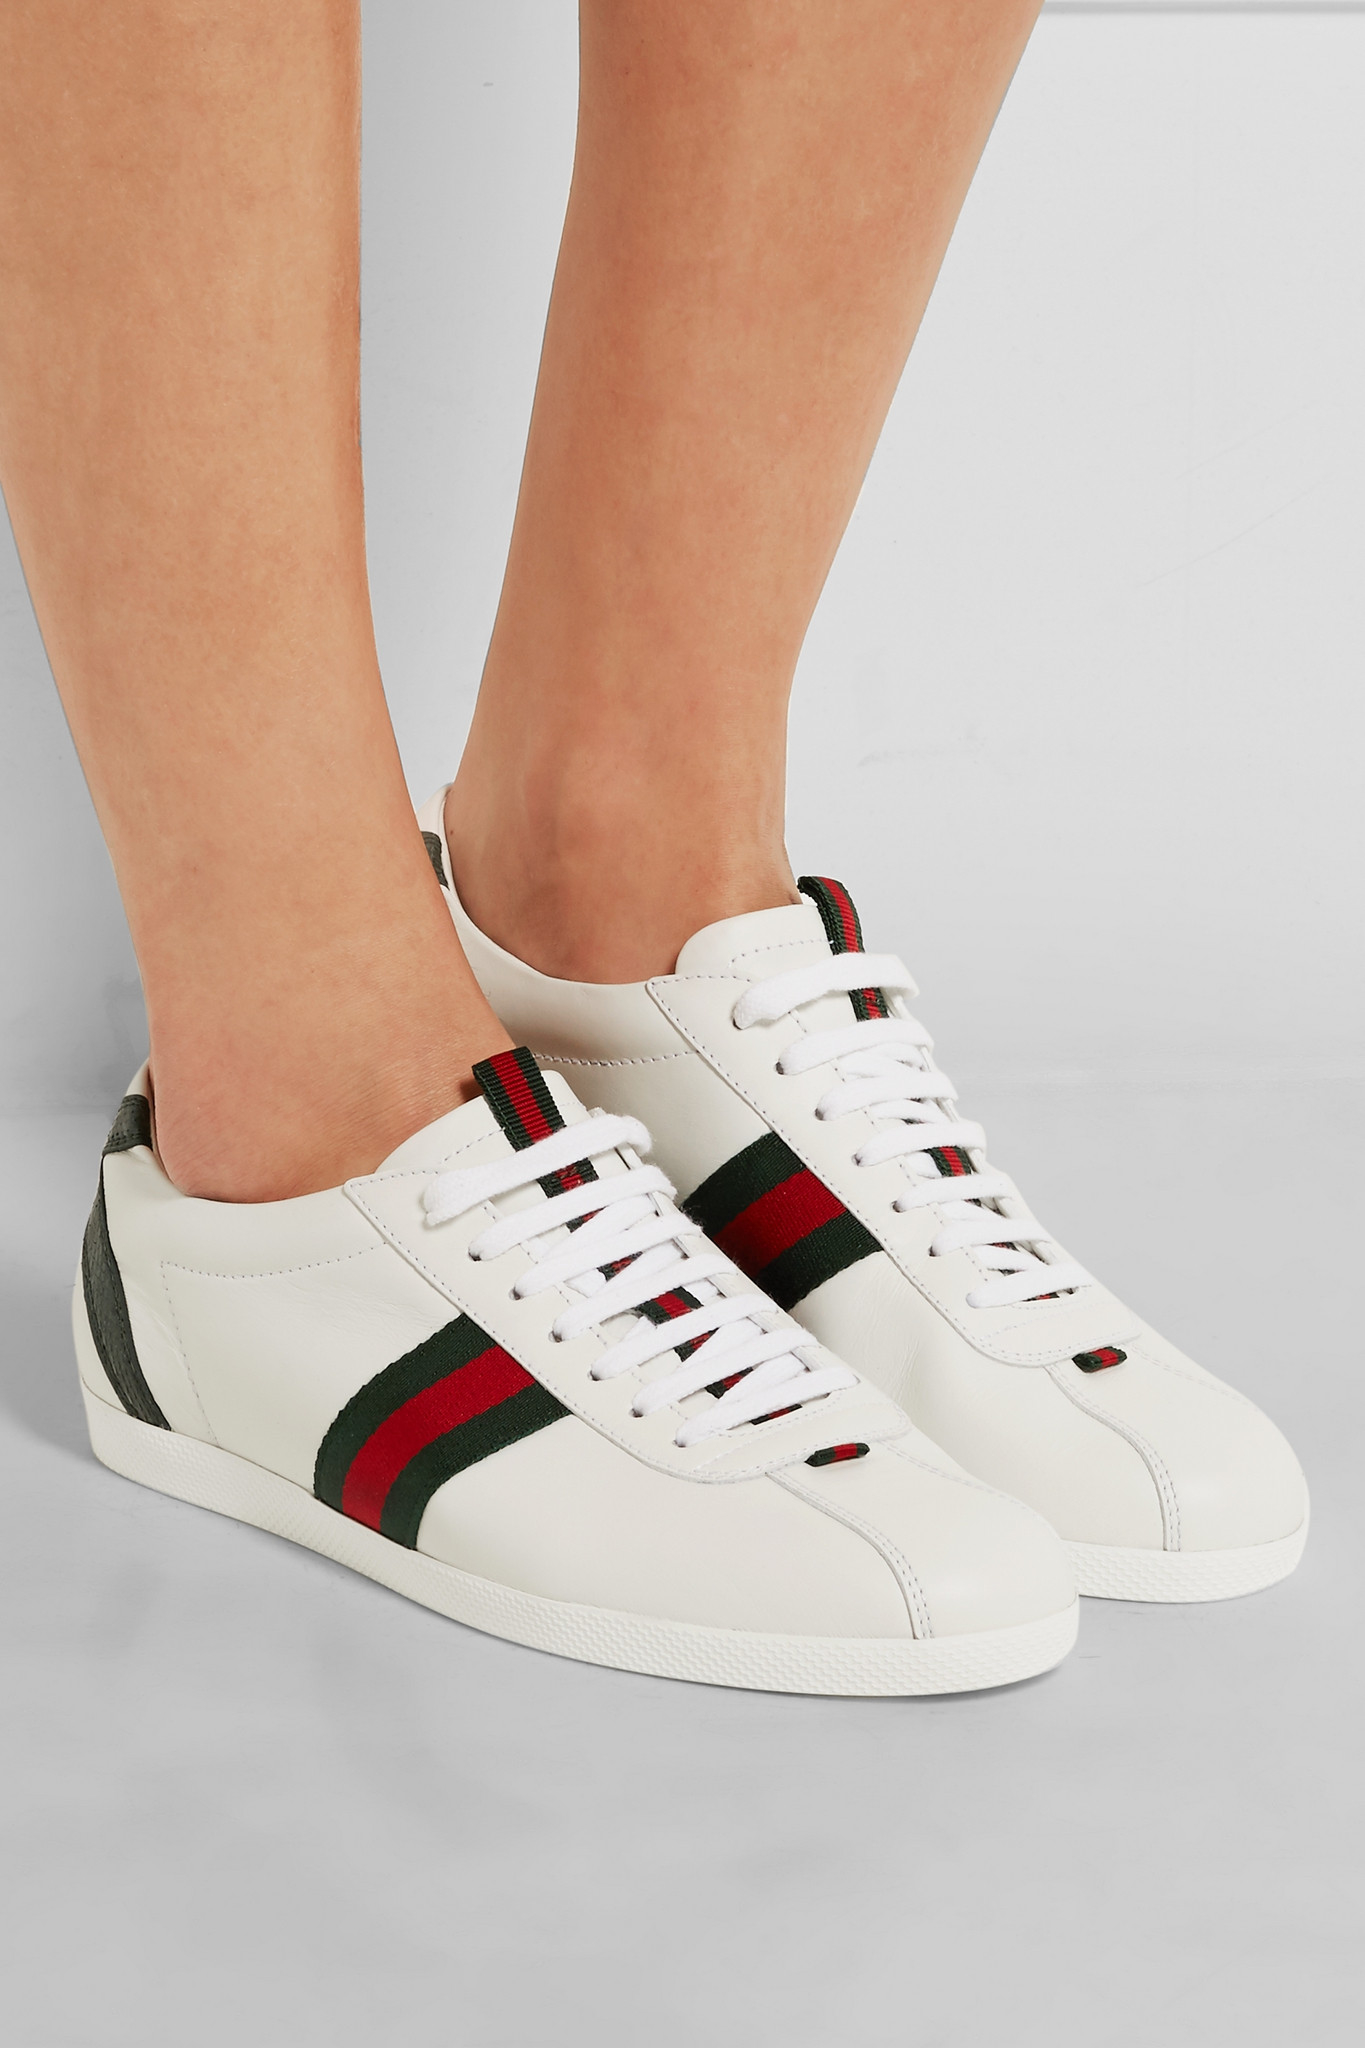 6a452ab8e Lyst - Gucci New Ace Watersnake-trimmed Leather Sneakers in White